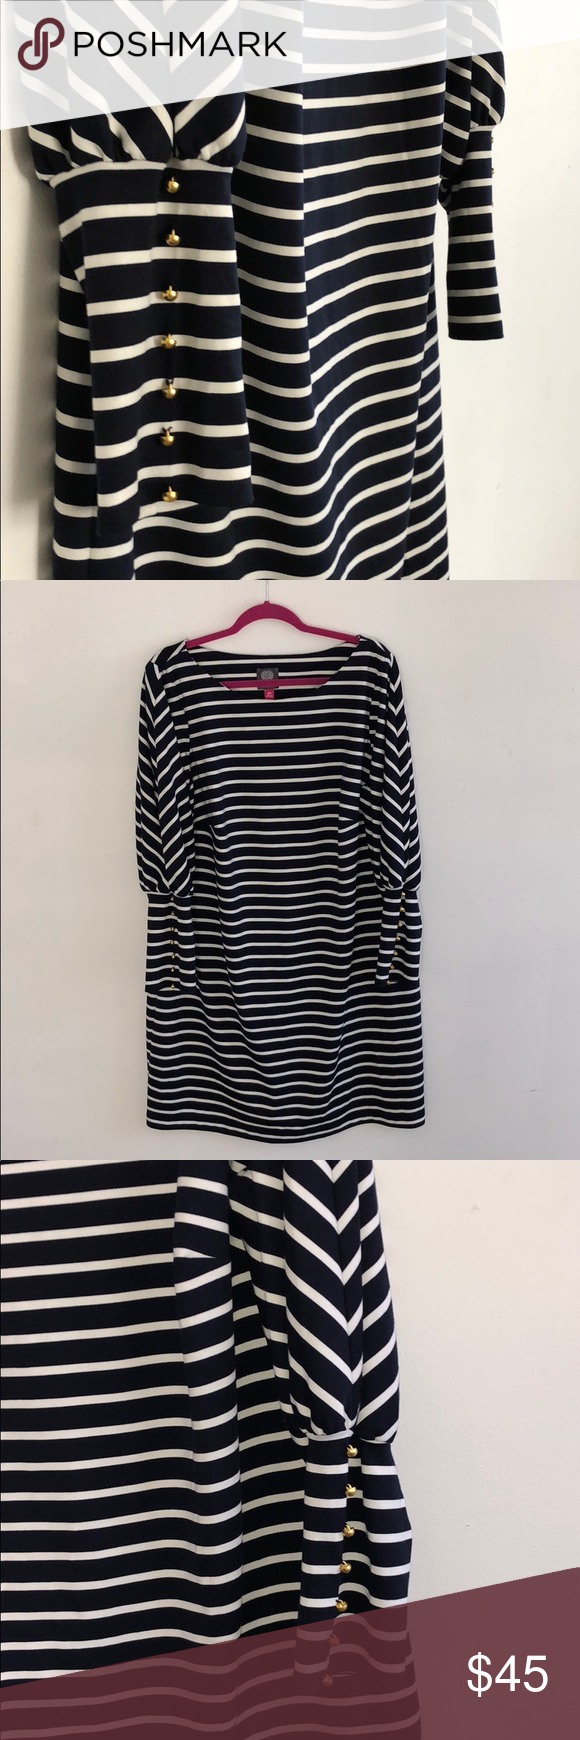 Like New Vince Camuto Striped Dress Gold Details Striped Dress Clothes Design Vince Camuto Dress [ 1740 x 580 Pixel ]